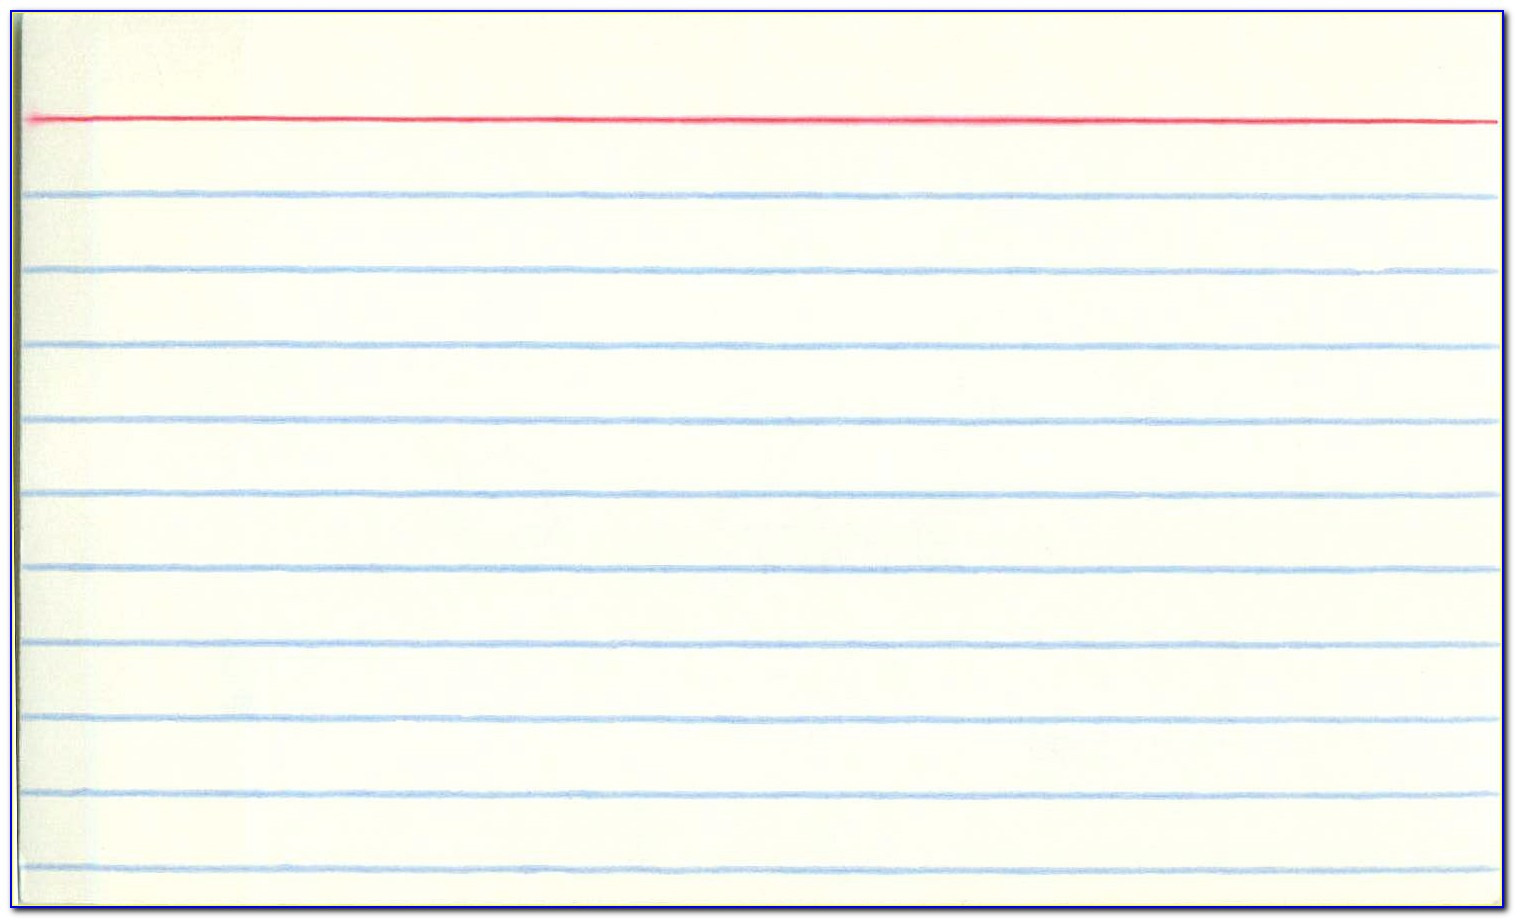 3x5 Index Card Template Printable